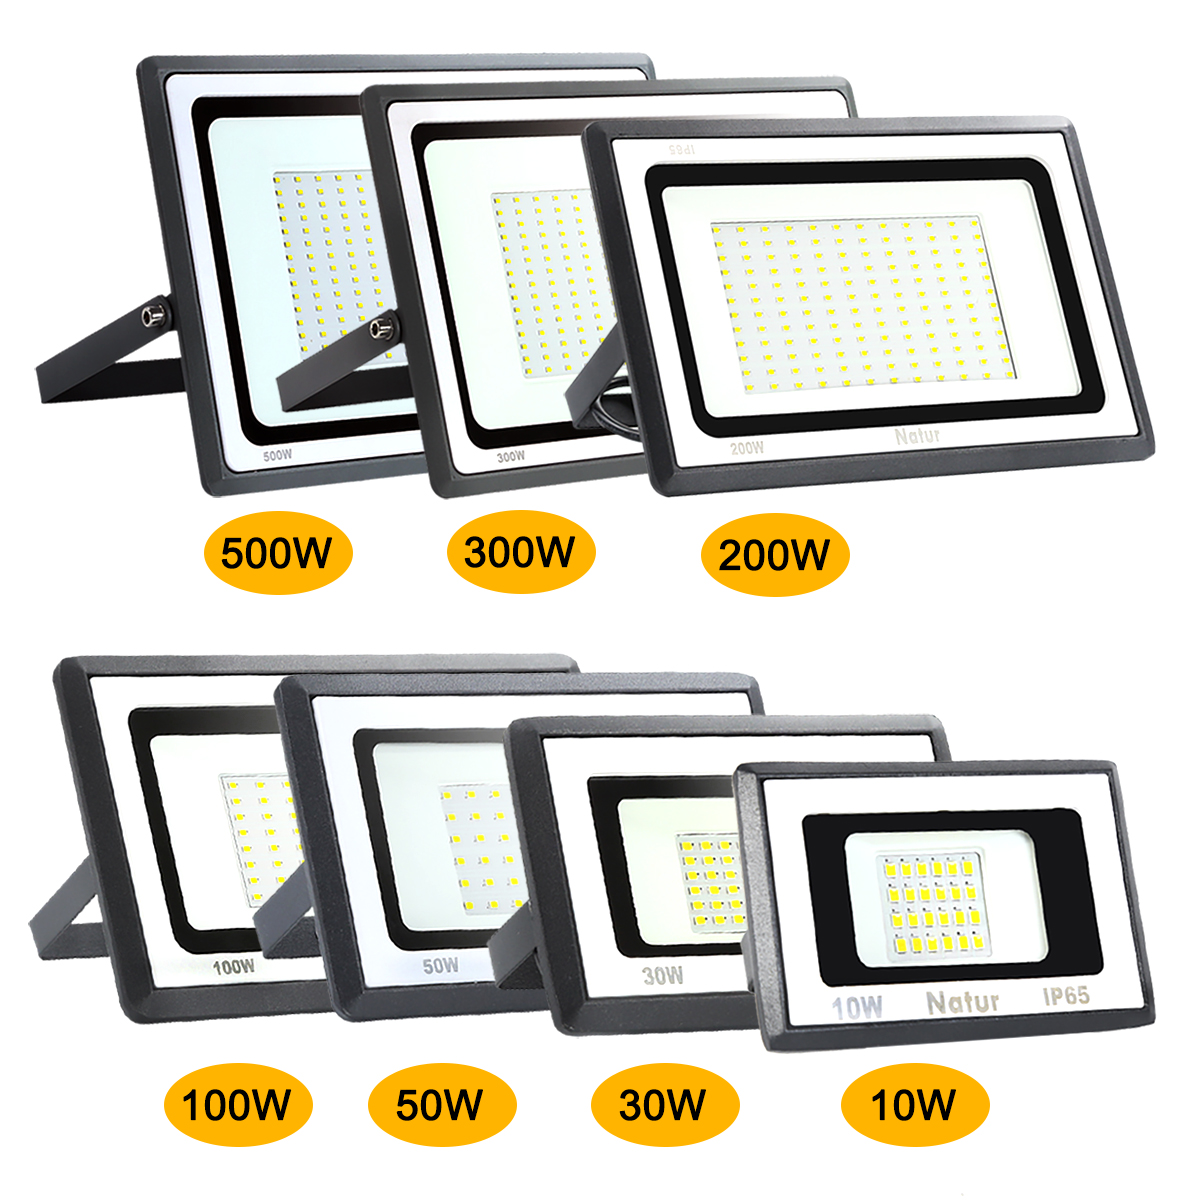 Led Spotlight 10W 20W 30W 50W 100W 150W 200W Flood Light Garden Lamp Spot Light Wall Washer Light Door Light Outdoor Reflector